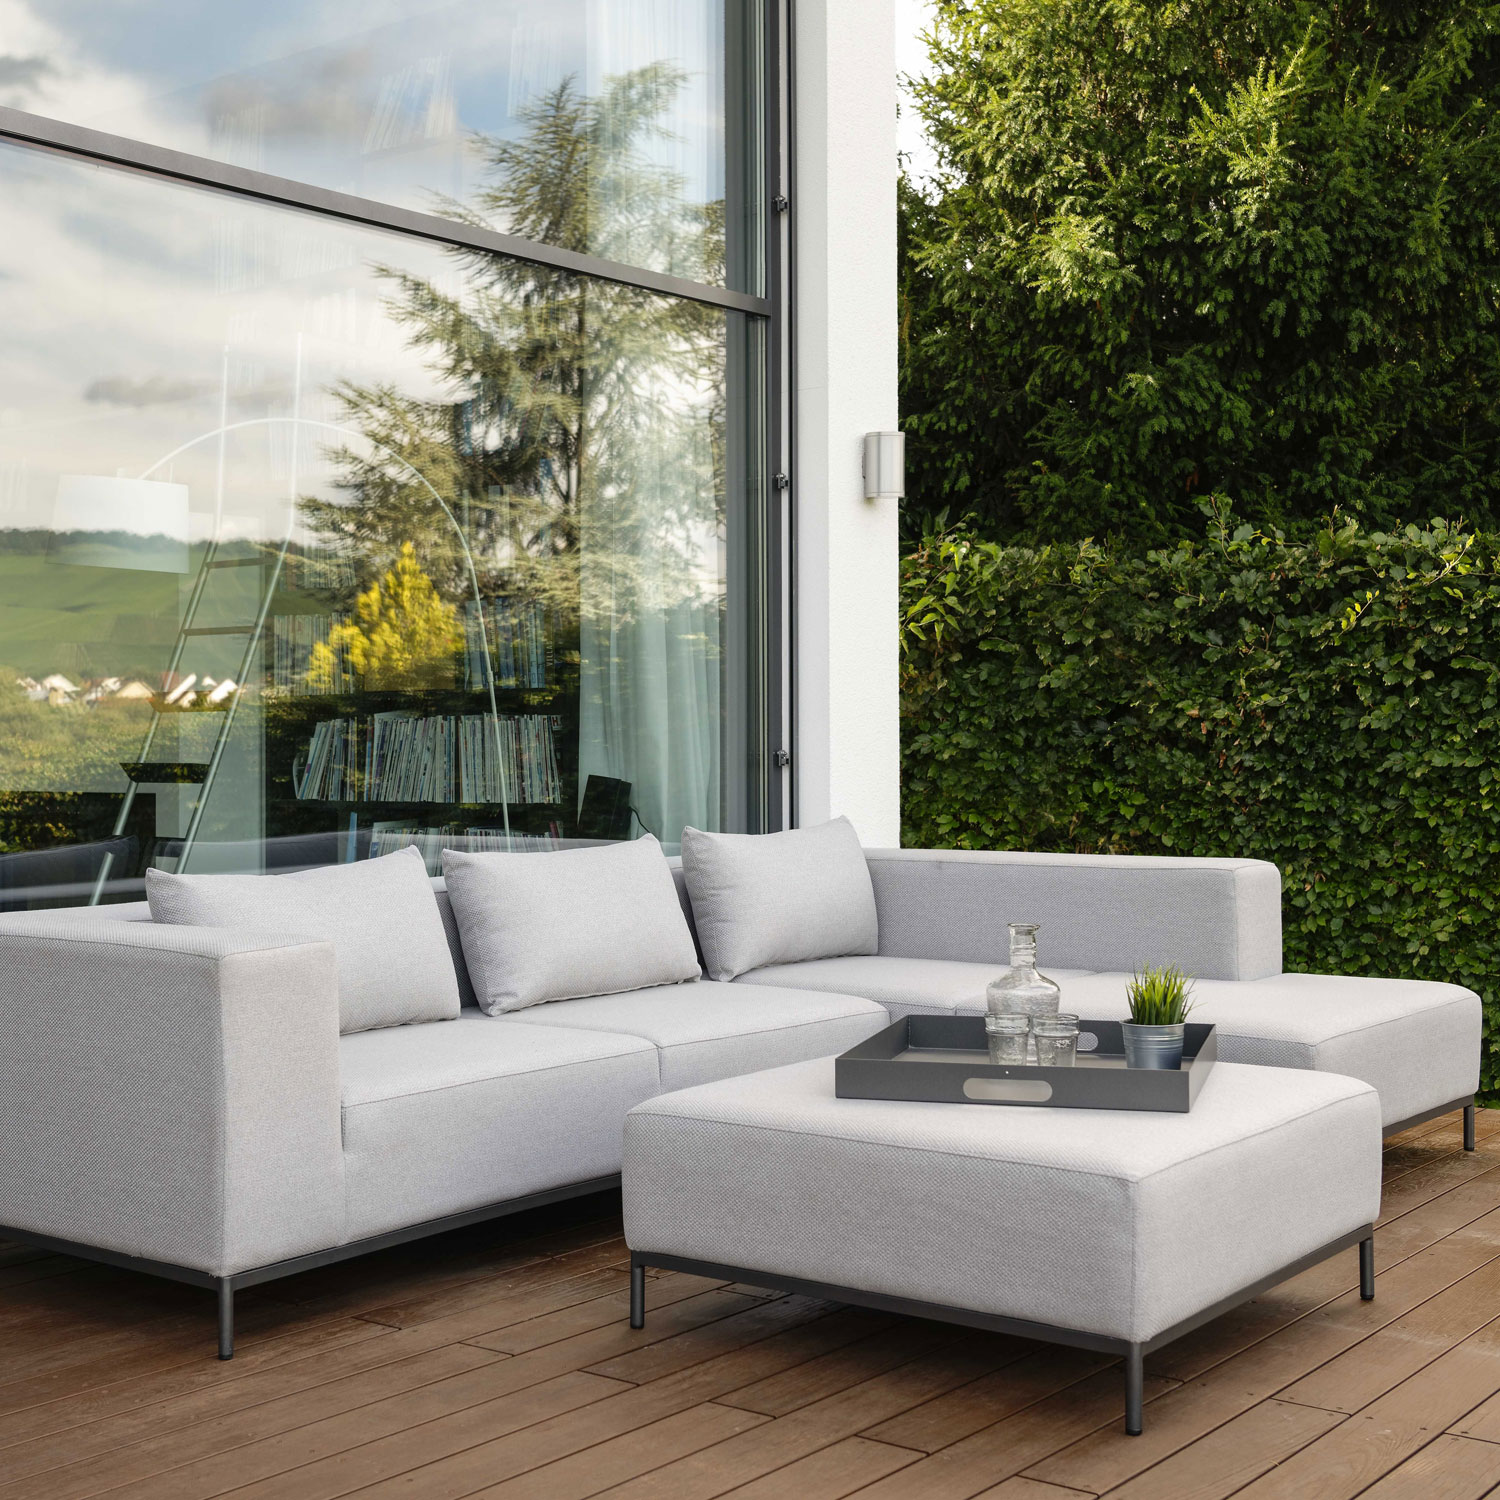 Taavi Corner Sofa 2.5 Seater Aluminum Anthracite Armrest Right Outdoor Fabric In Crystal Silver And Back Cushion by Outdoor Living